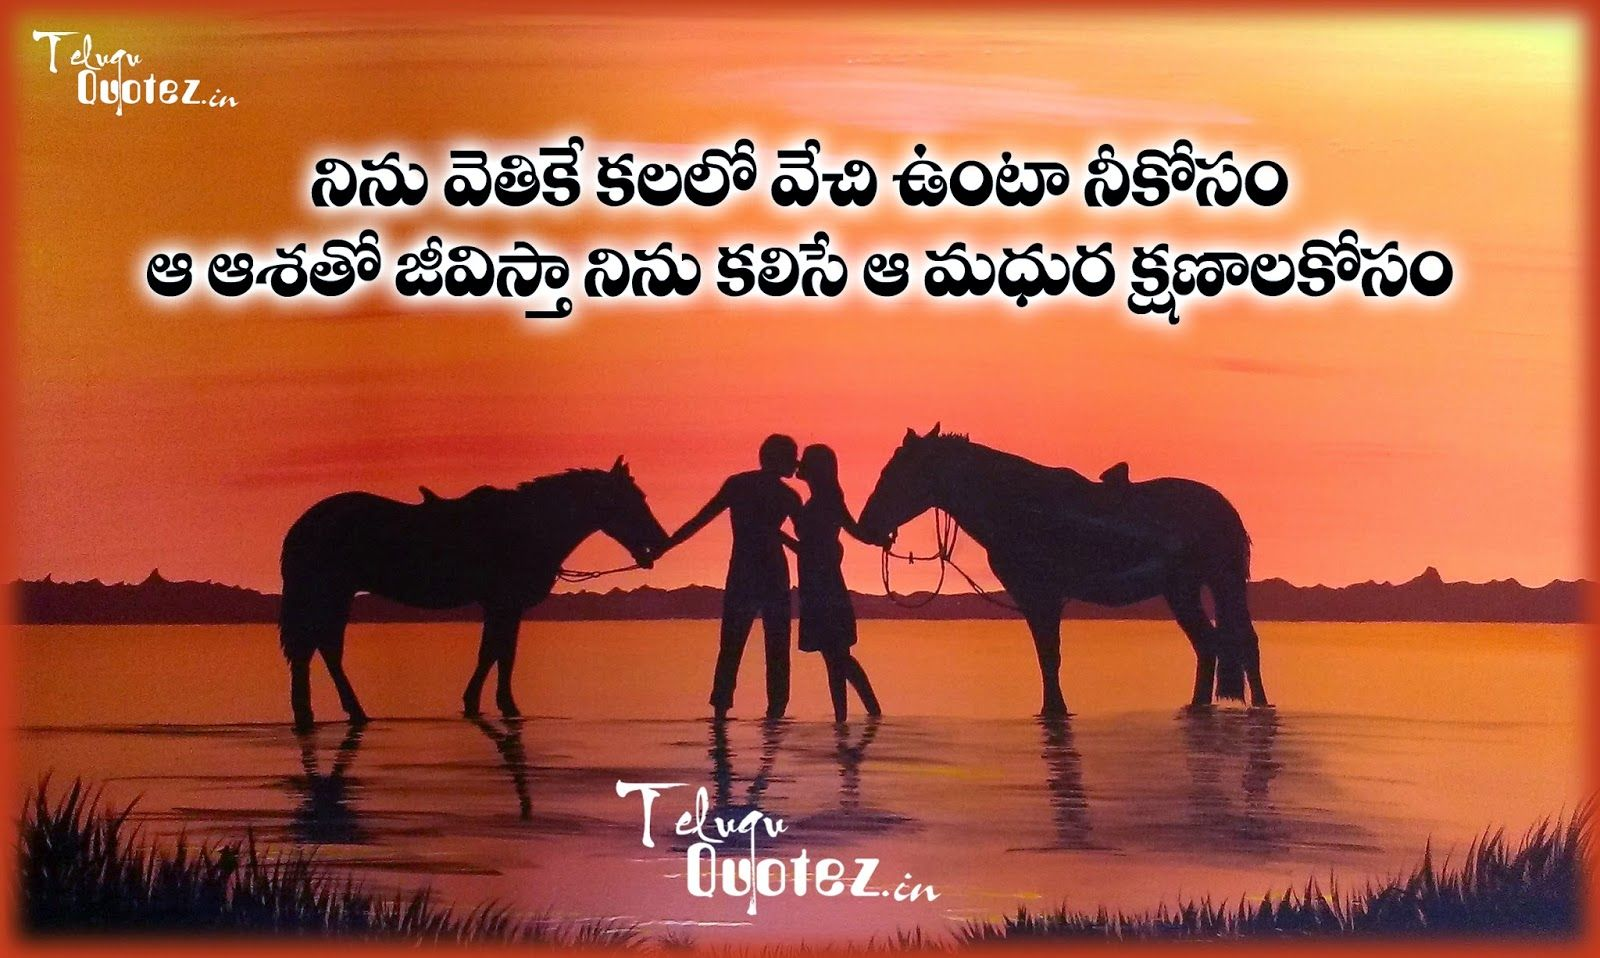 telugu quotes on lovemotivational telugu quotes about love and lifemeaningful life quotes